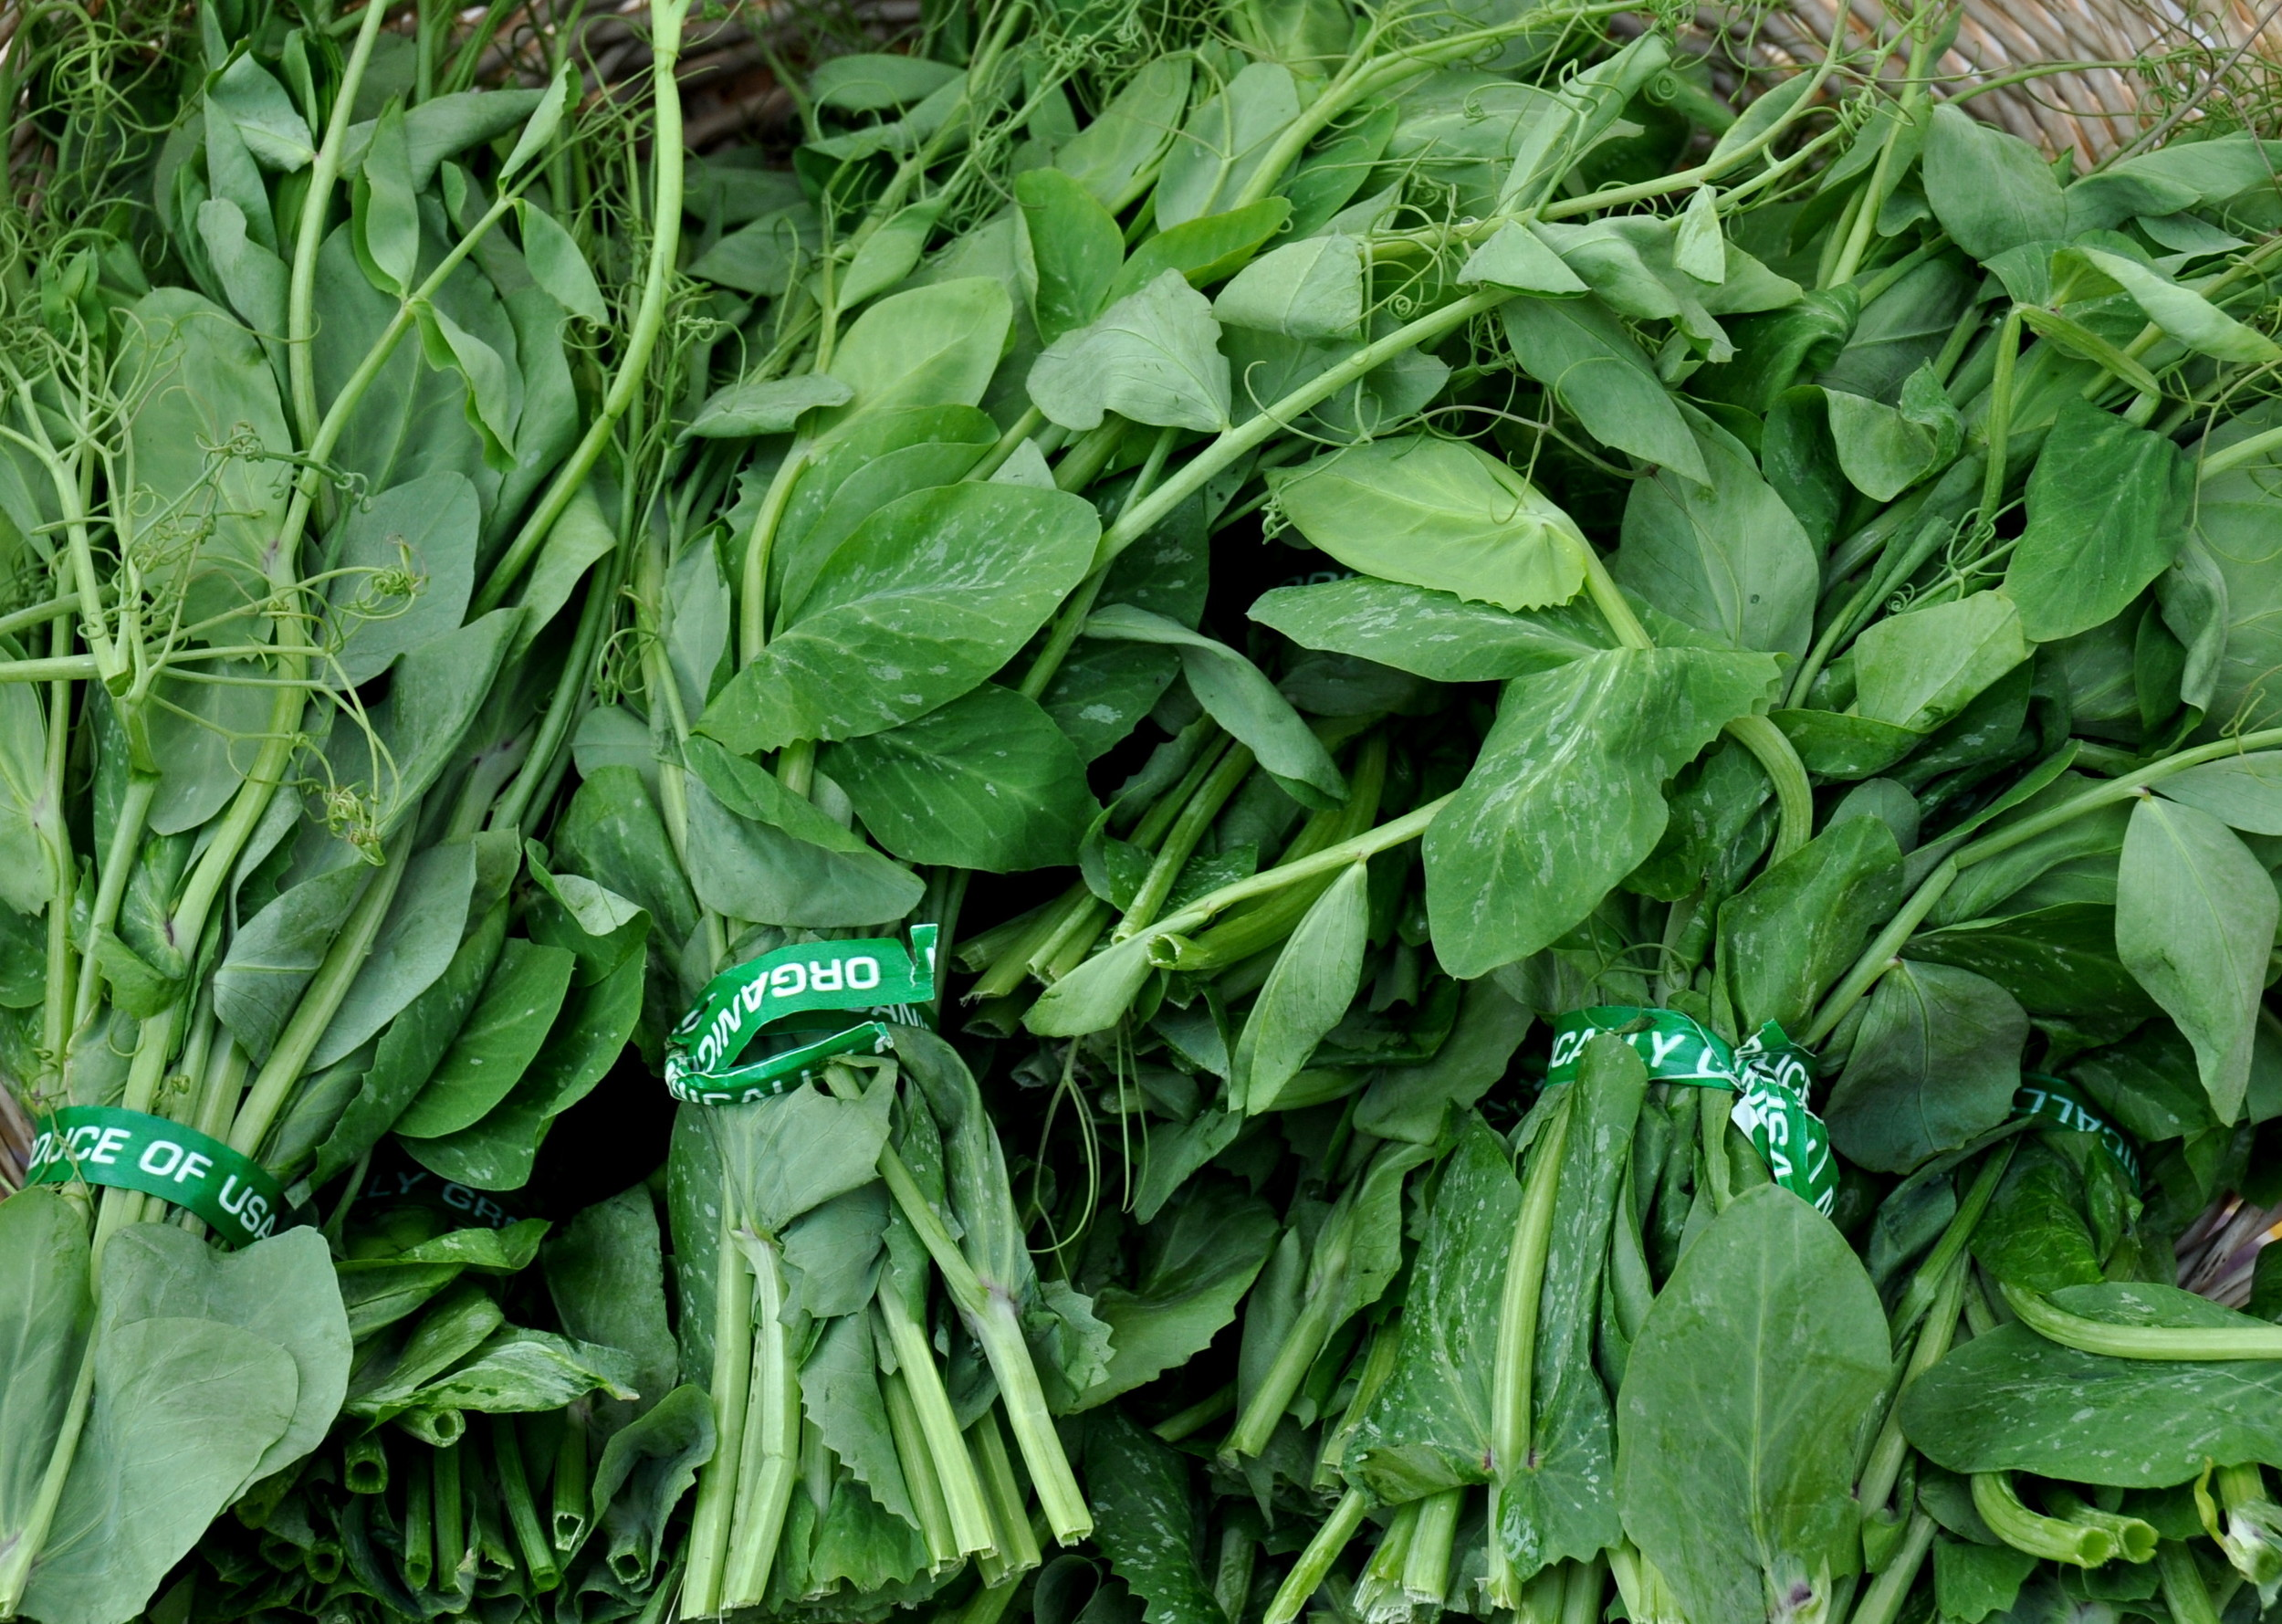 Pea vines from Oxbow Farm. Photo copyright 2012 by Zachary D. Lyons.